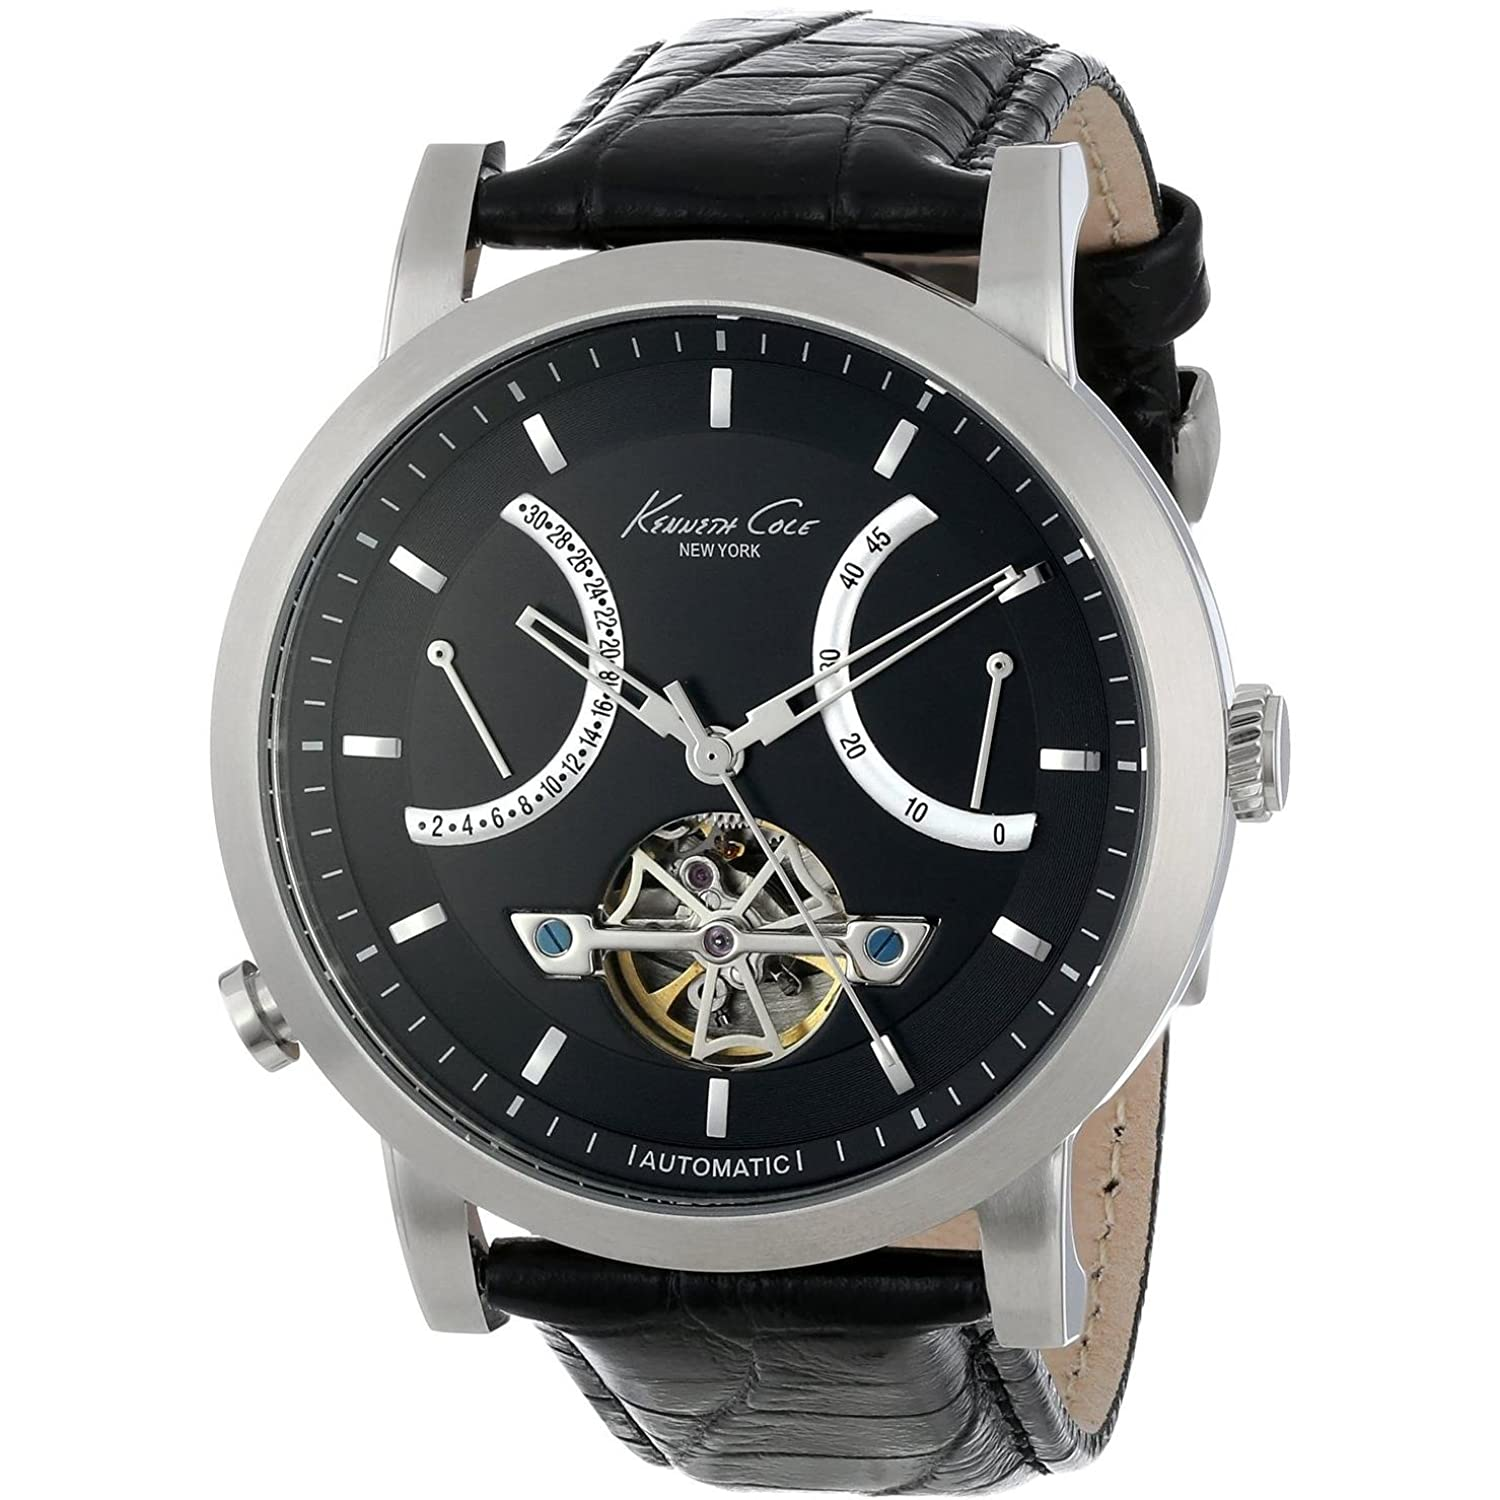 Kenneth Cole Automatic Herrenuhr schwarz-silber KC8015